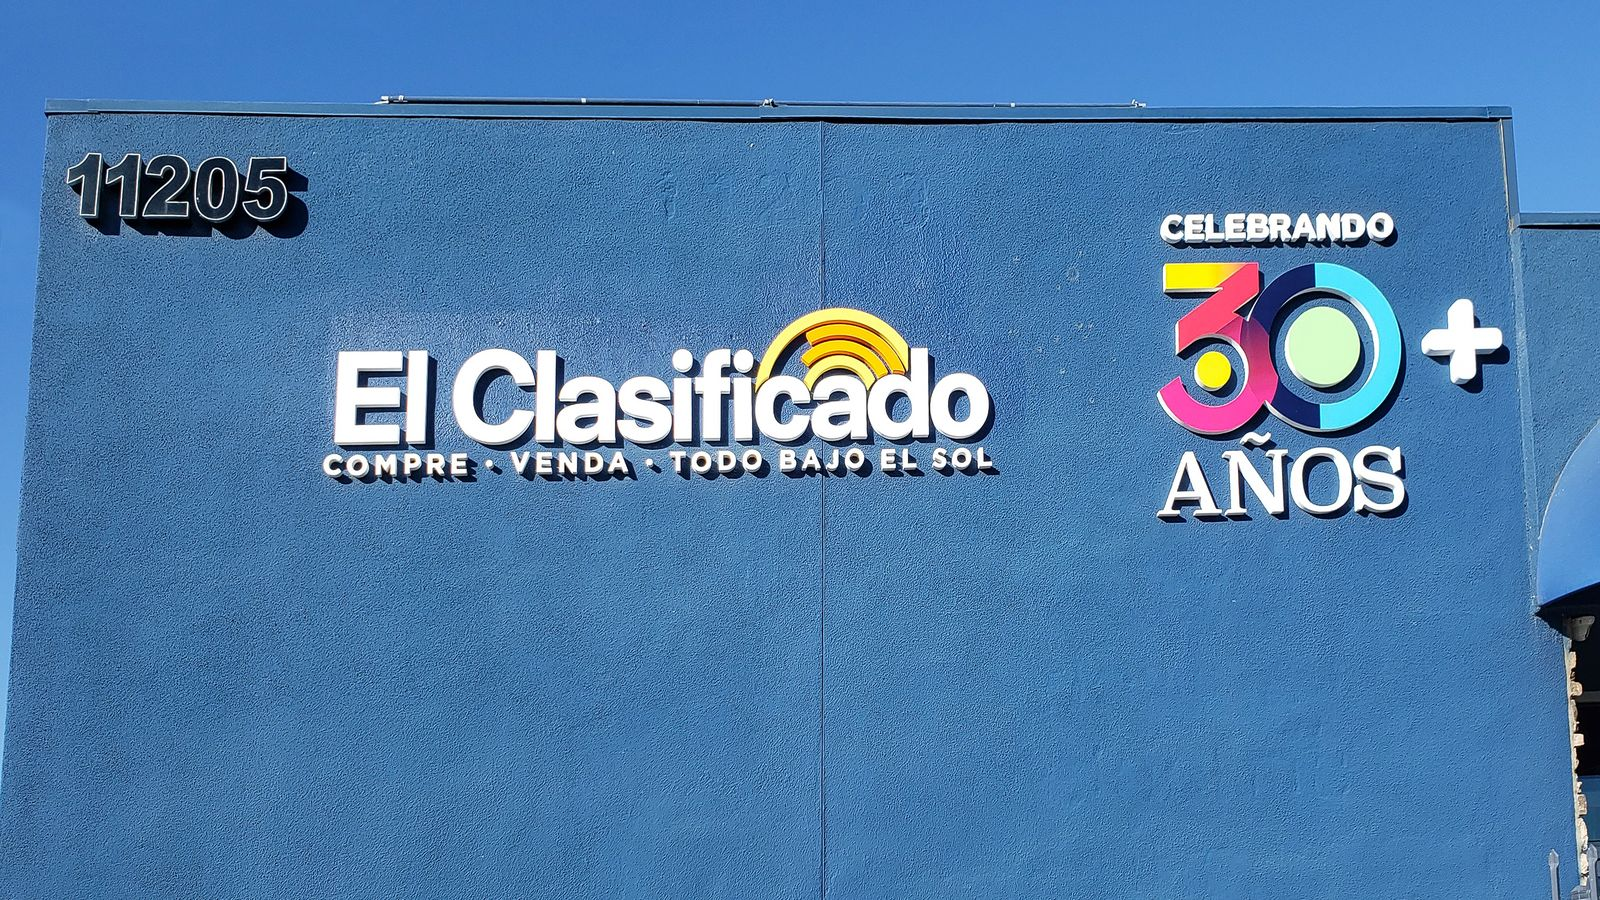 El Clasificado 3d sign custom-made painted in bright colors displaying branded information made of PVC for outdoor branding